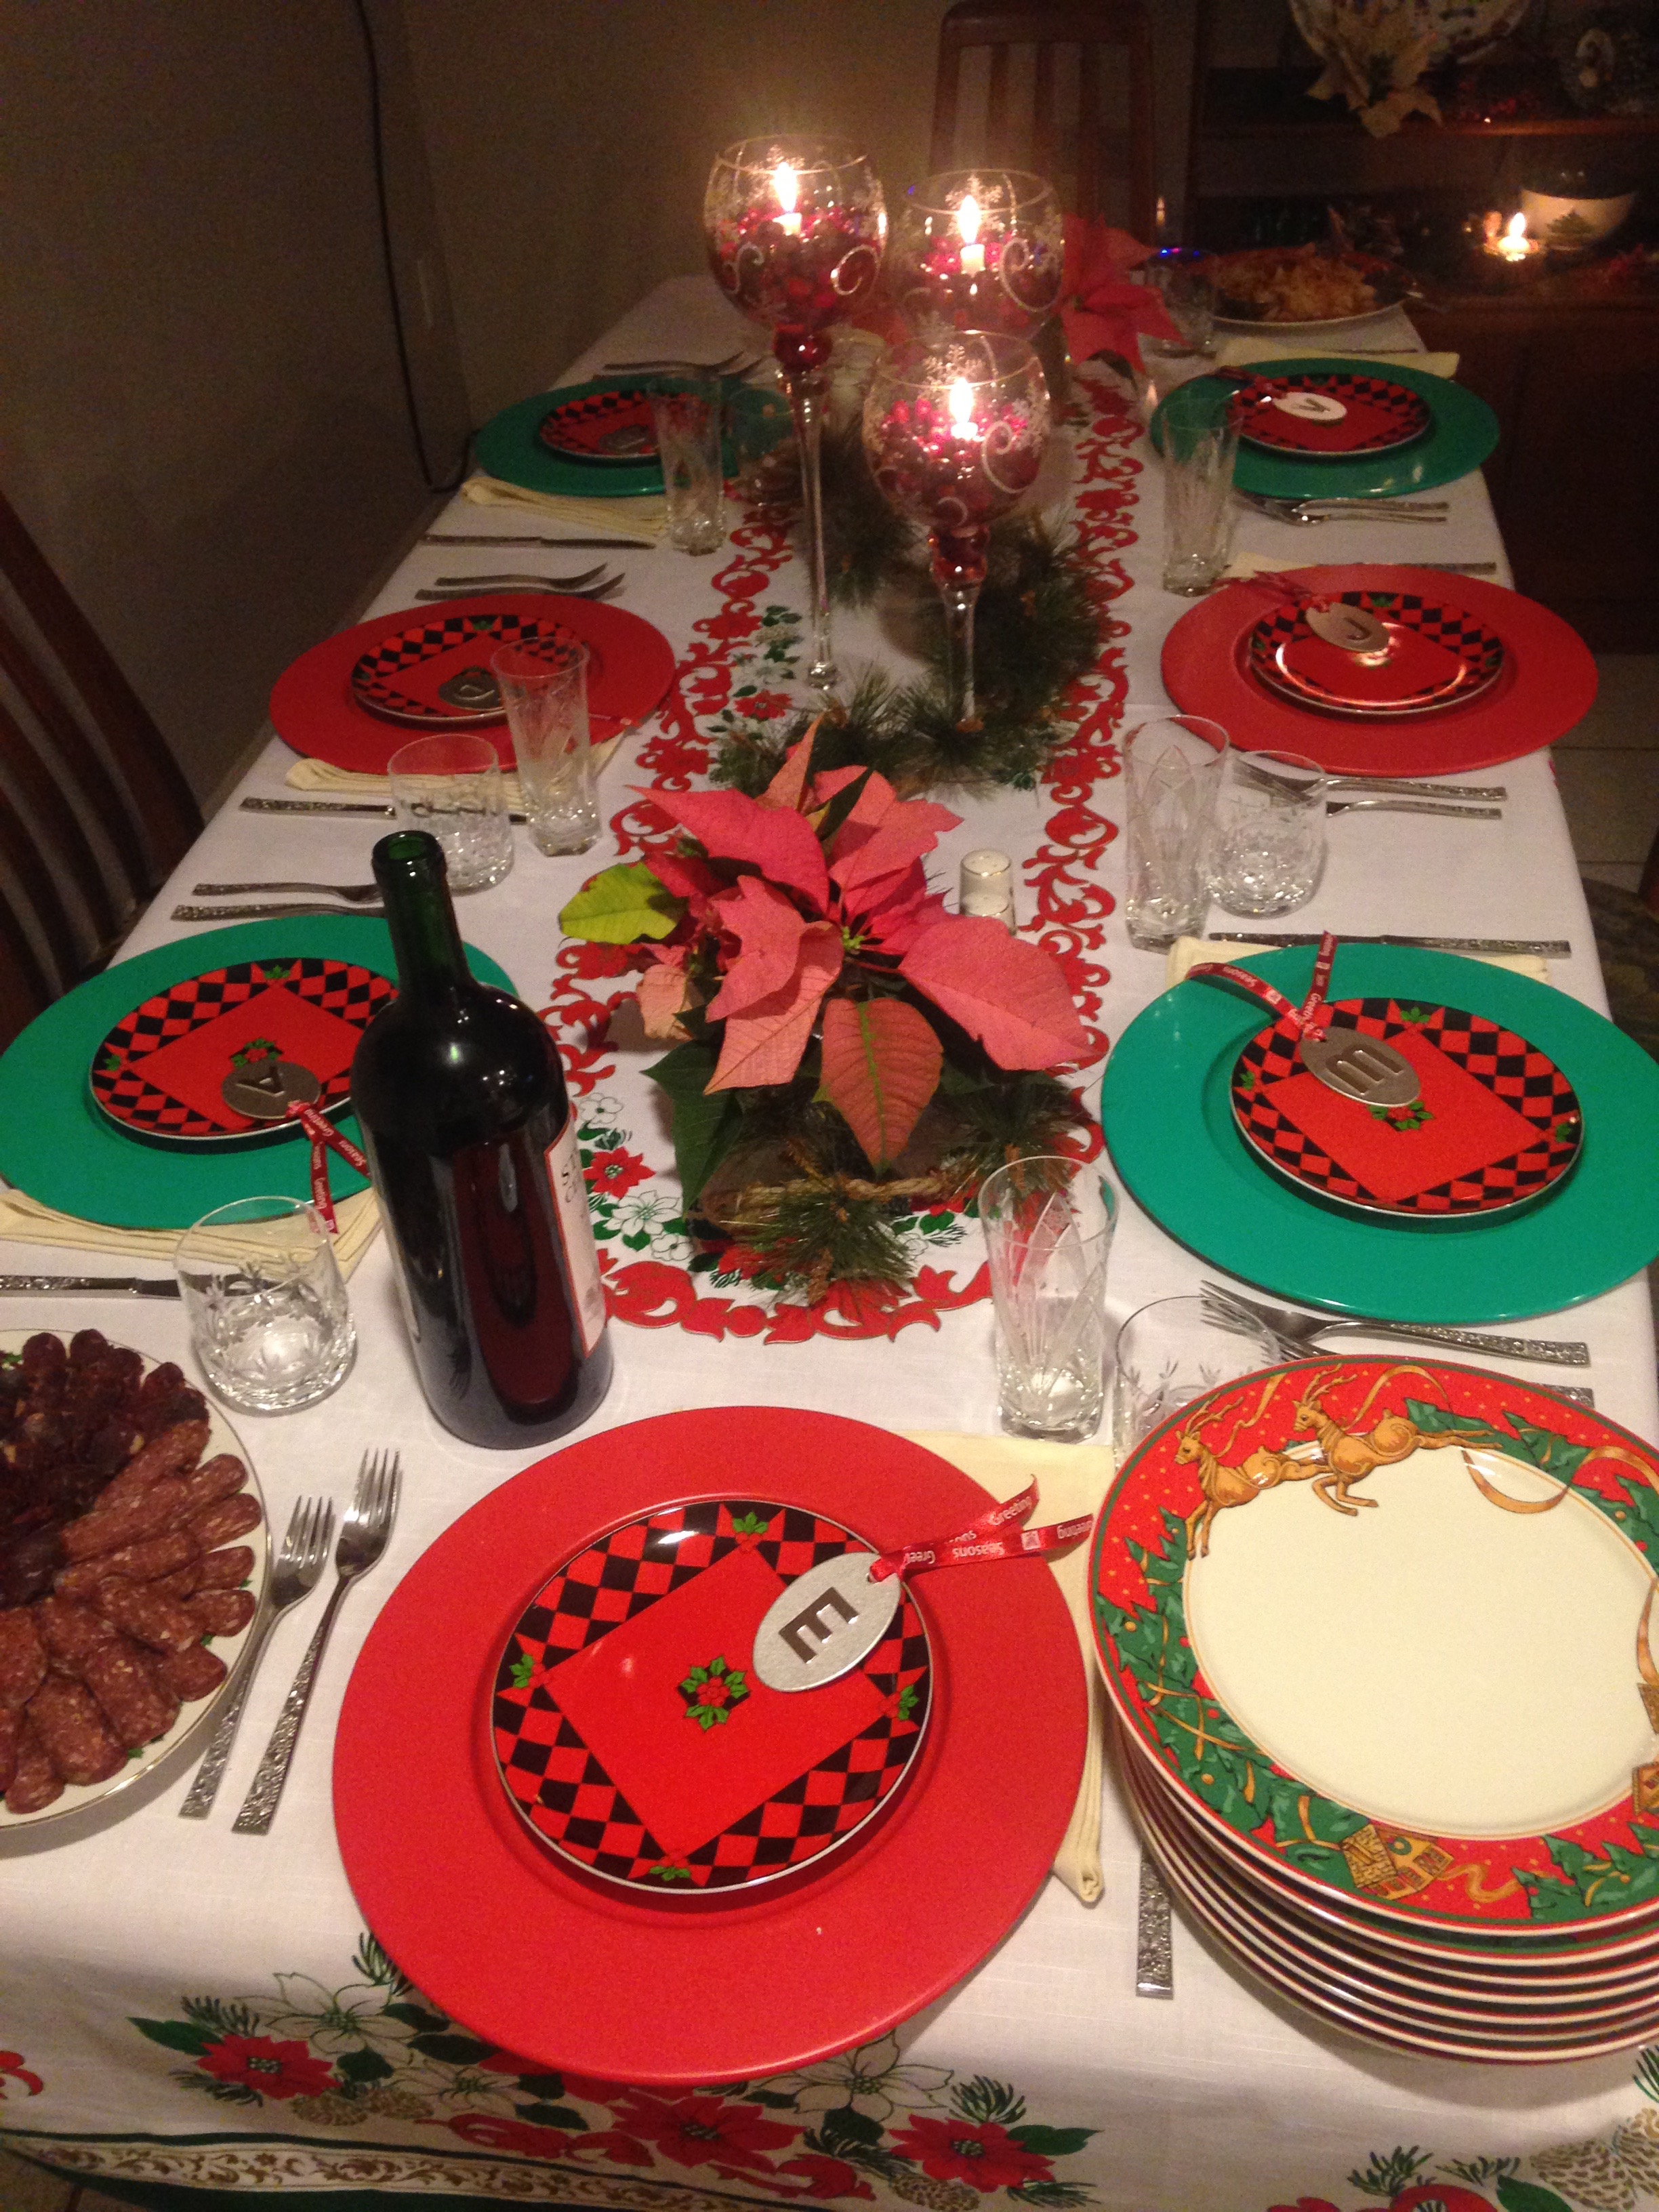 Figure 2a.  The mother's Christmas dinner table